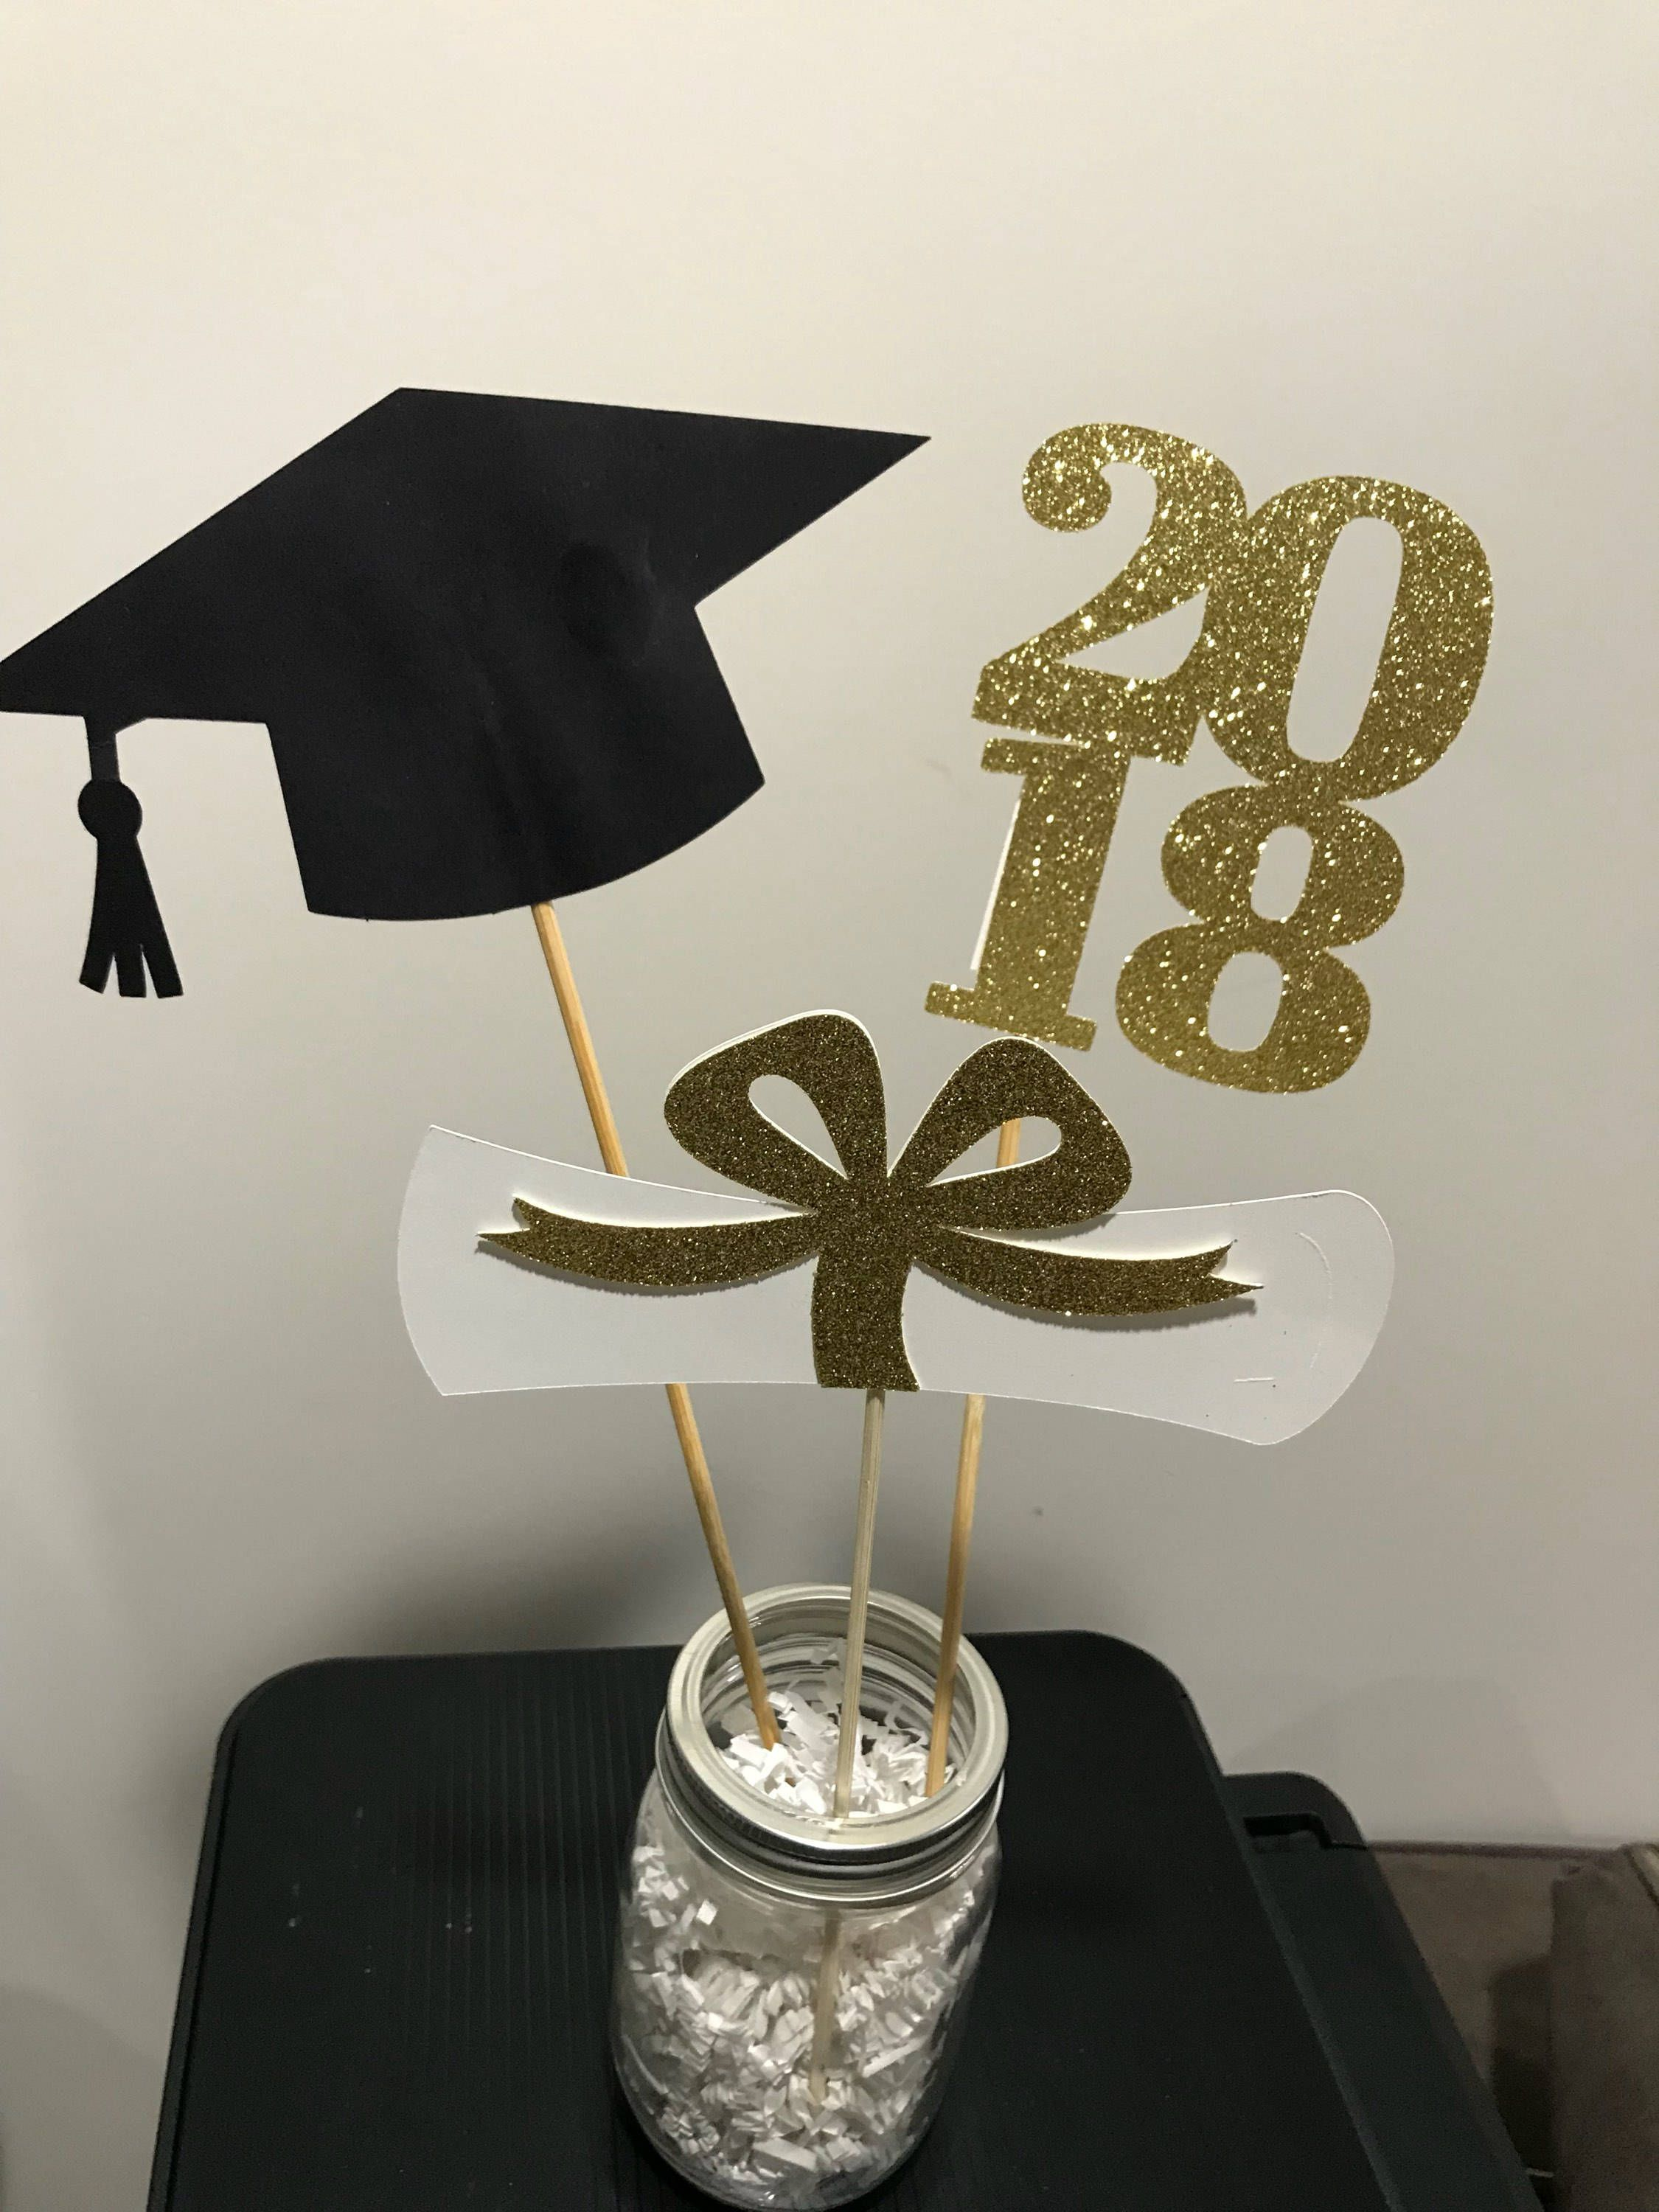 Graduation Centerpiece Sticks 2018 Grad Cap Diploma Graduation